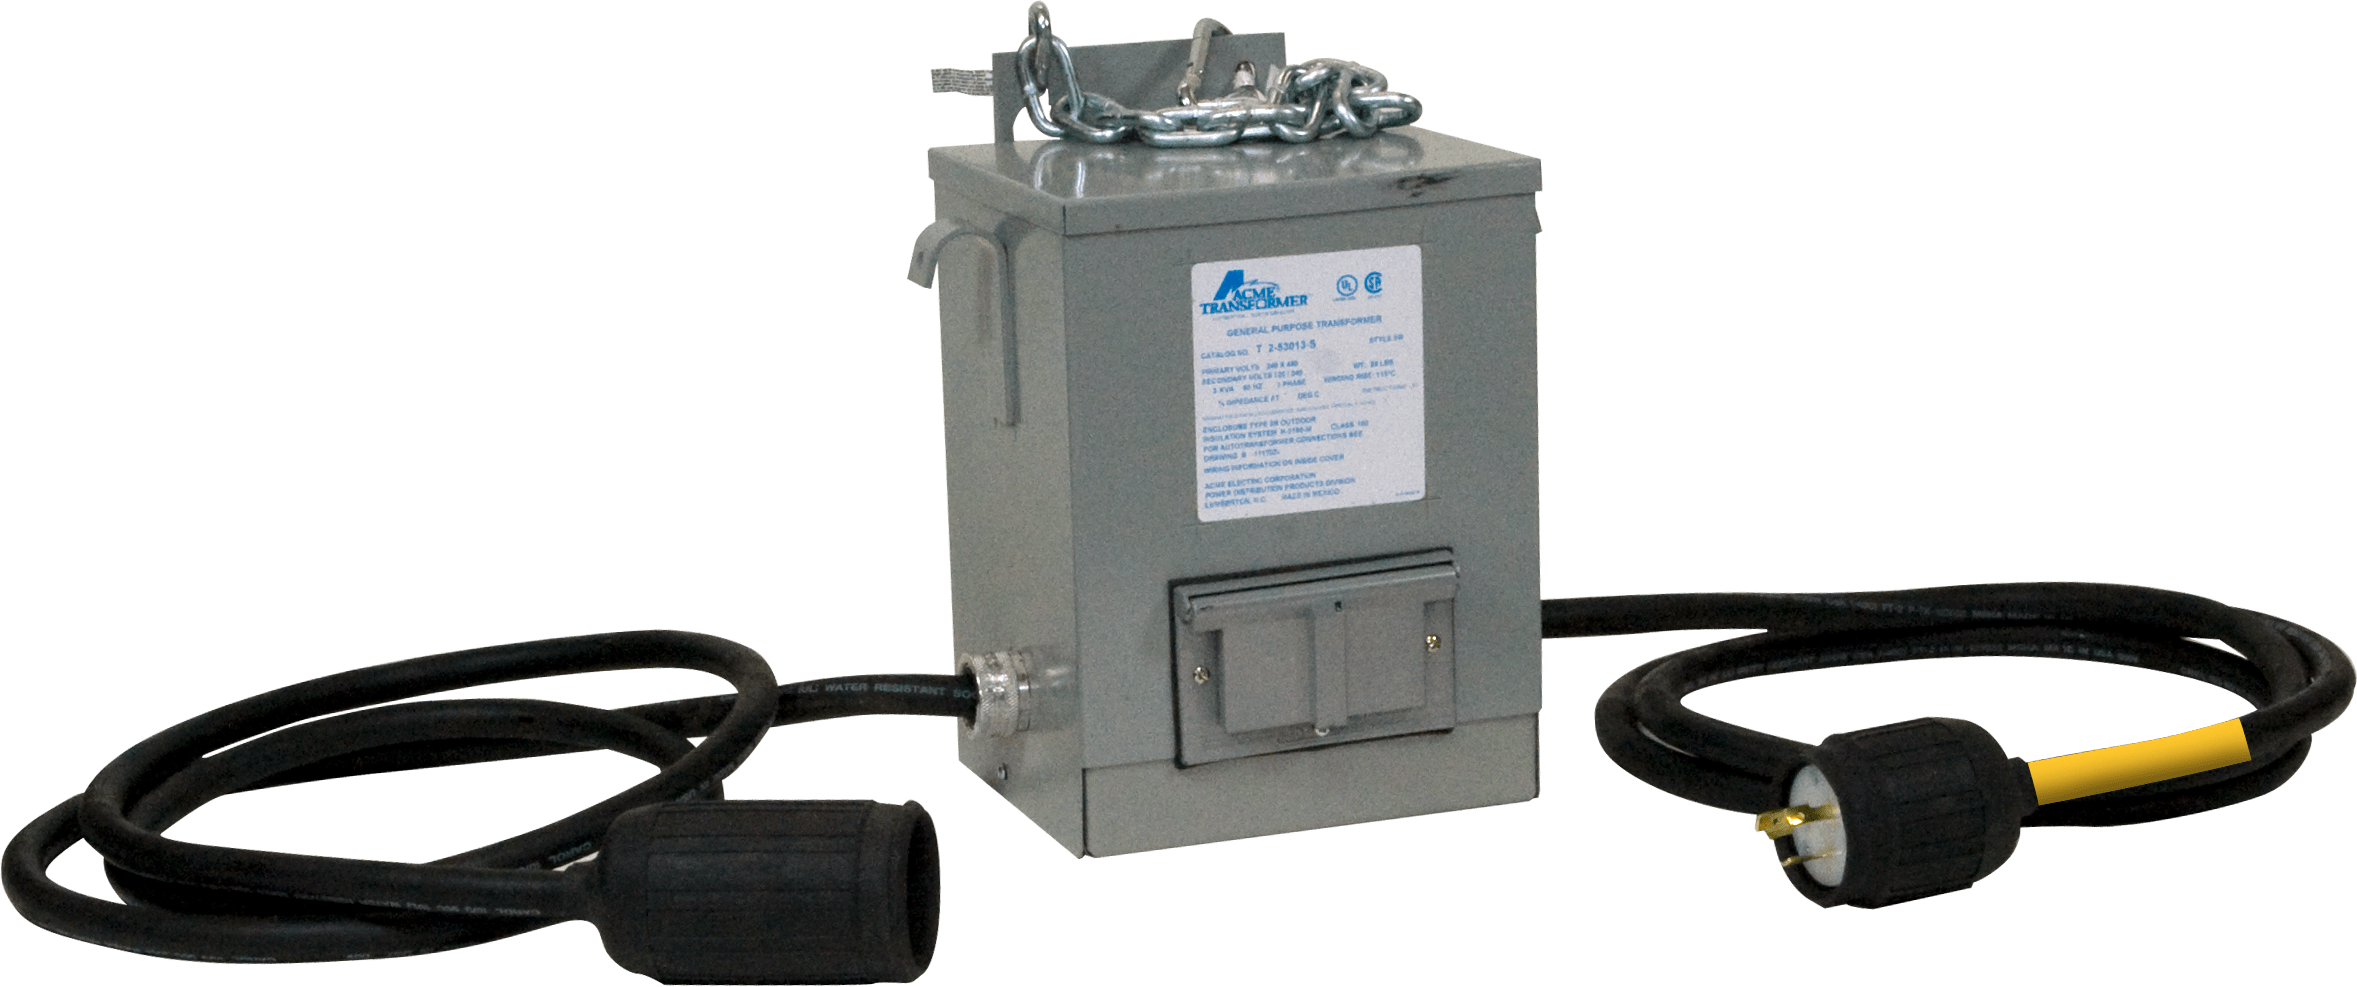 Step-down Transformer with GFI Receptacle